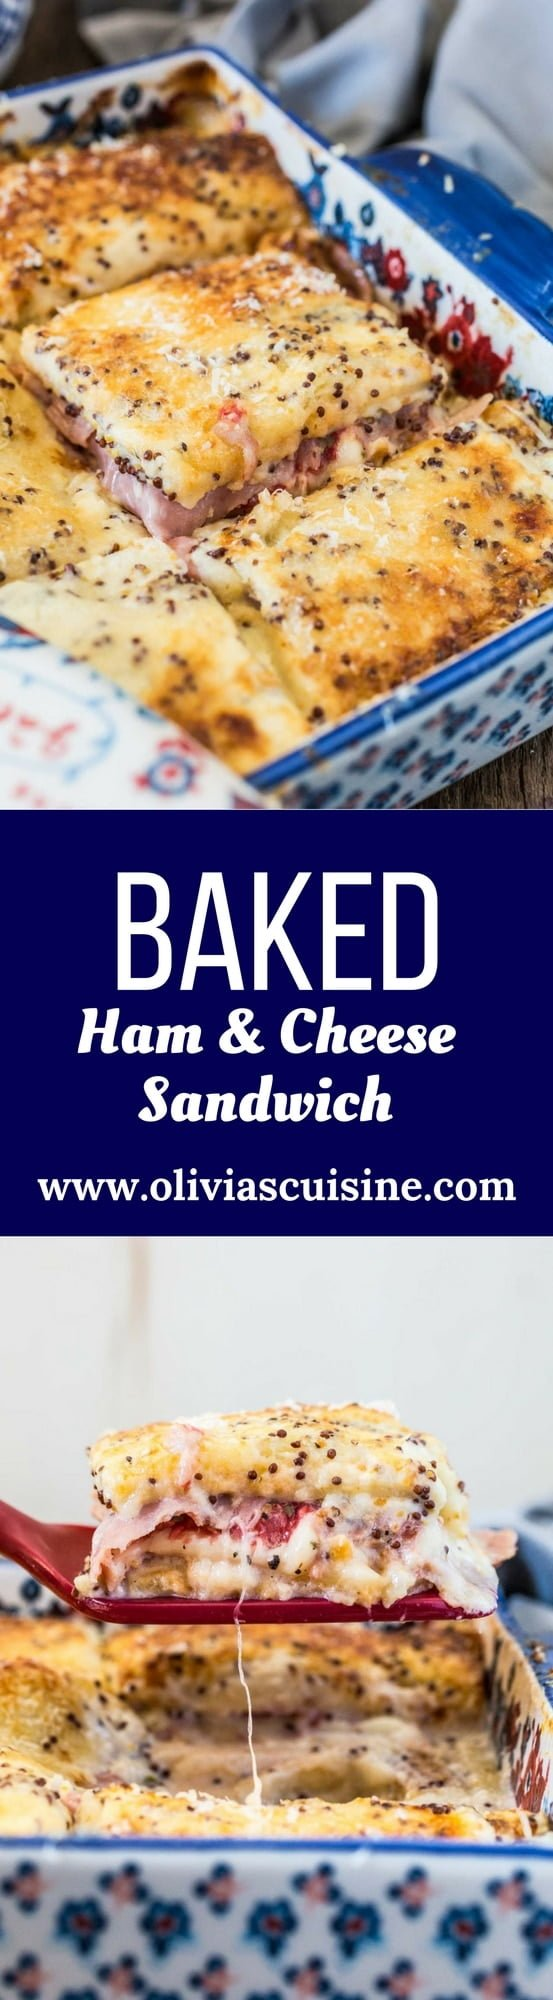 Brazilian Baked Ham and Cheese Sandwich | www.oliviascuisine.com | Who can resist a bubbly Baked Ham and Cheese Sandwich coming hot out of the oven? This Brazilian version takes it up a notch, because the sandwiches are covered with a delicious and creamy mustard-y white sauce. Simply to die for!